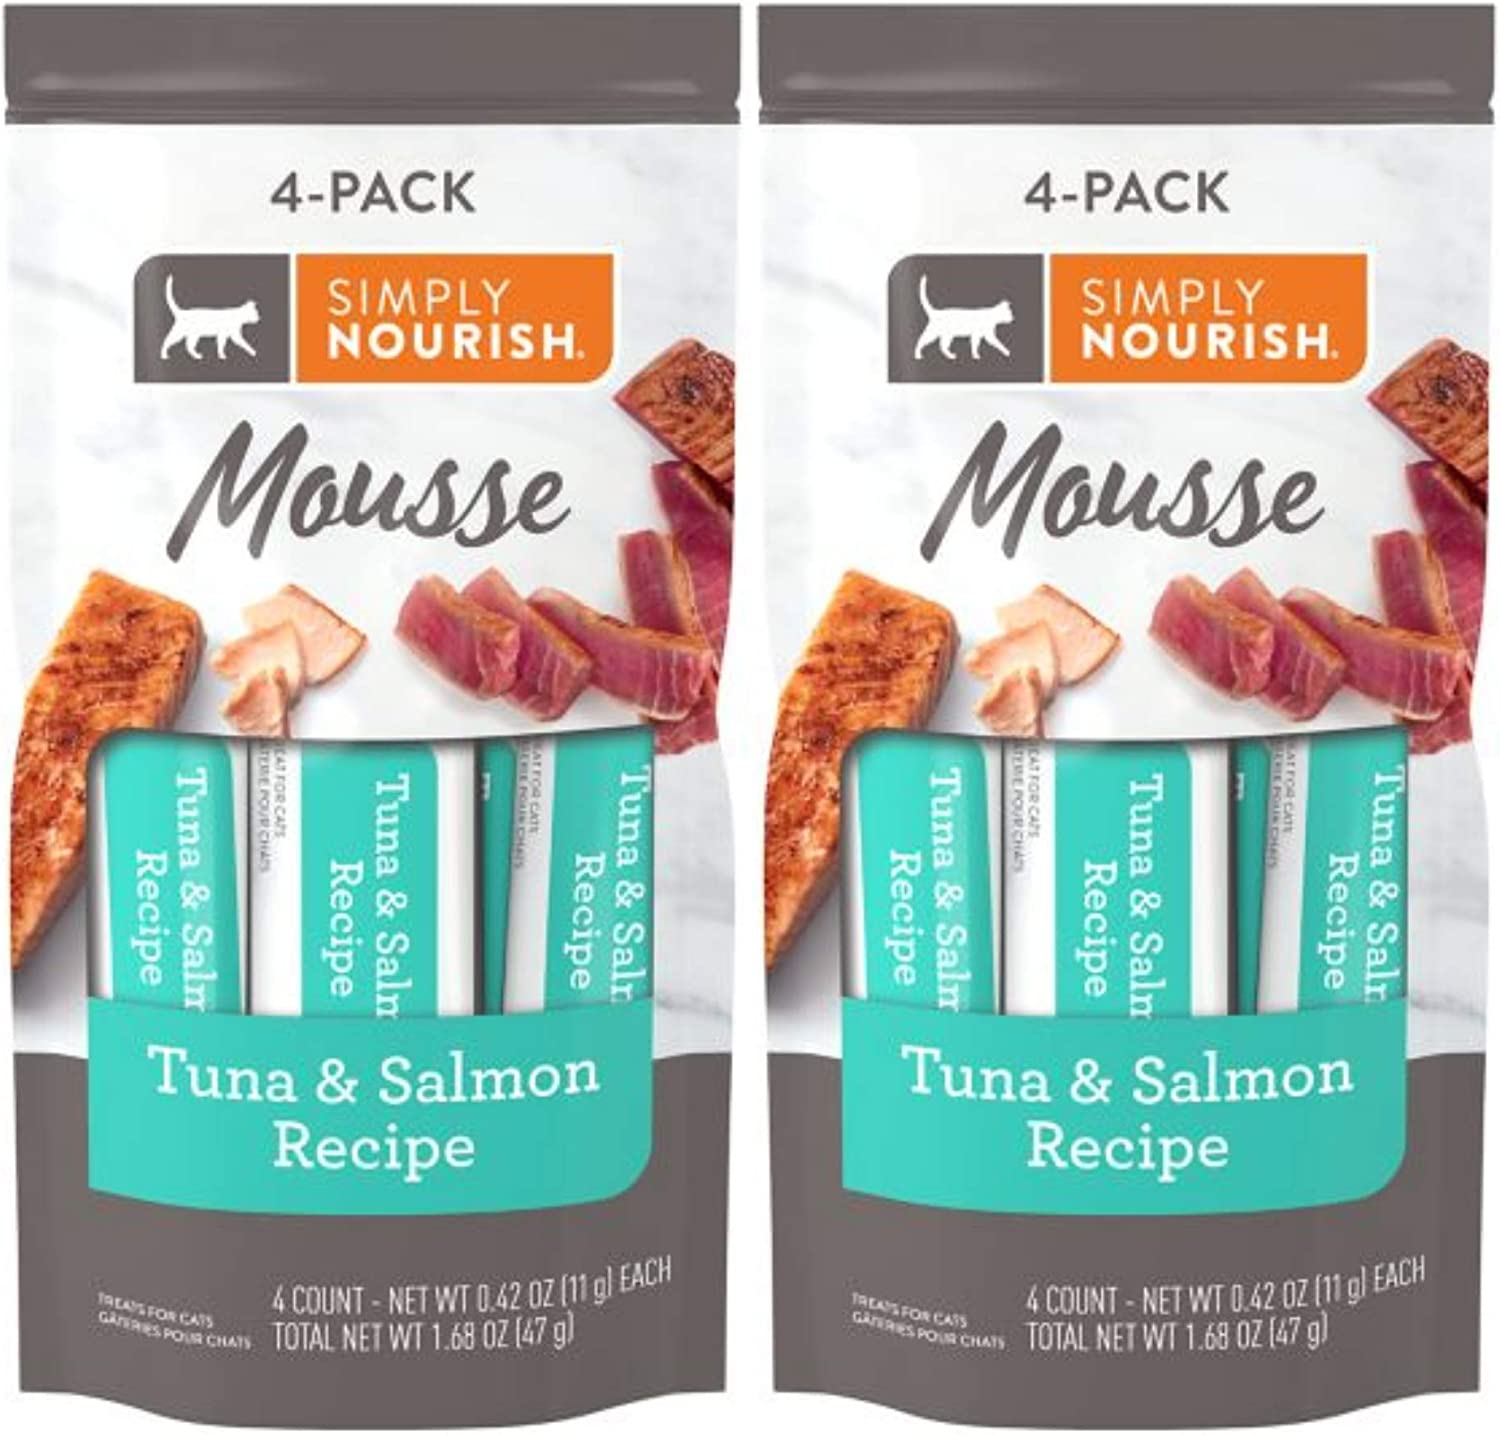 SIMPLY NOURISH Mousse Cat Treat Tuna and Salmon - 2 Pack